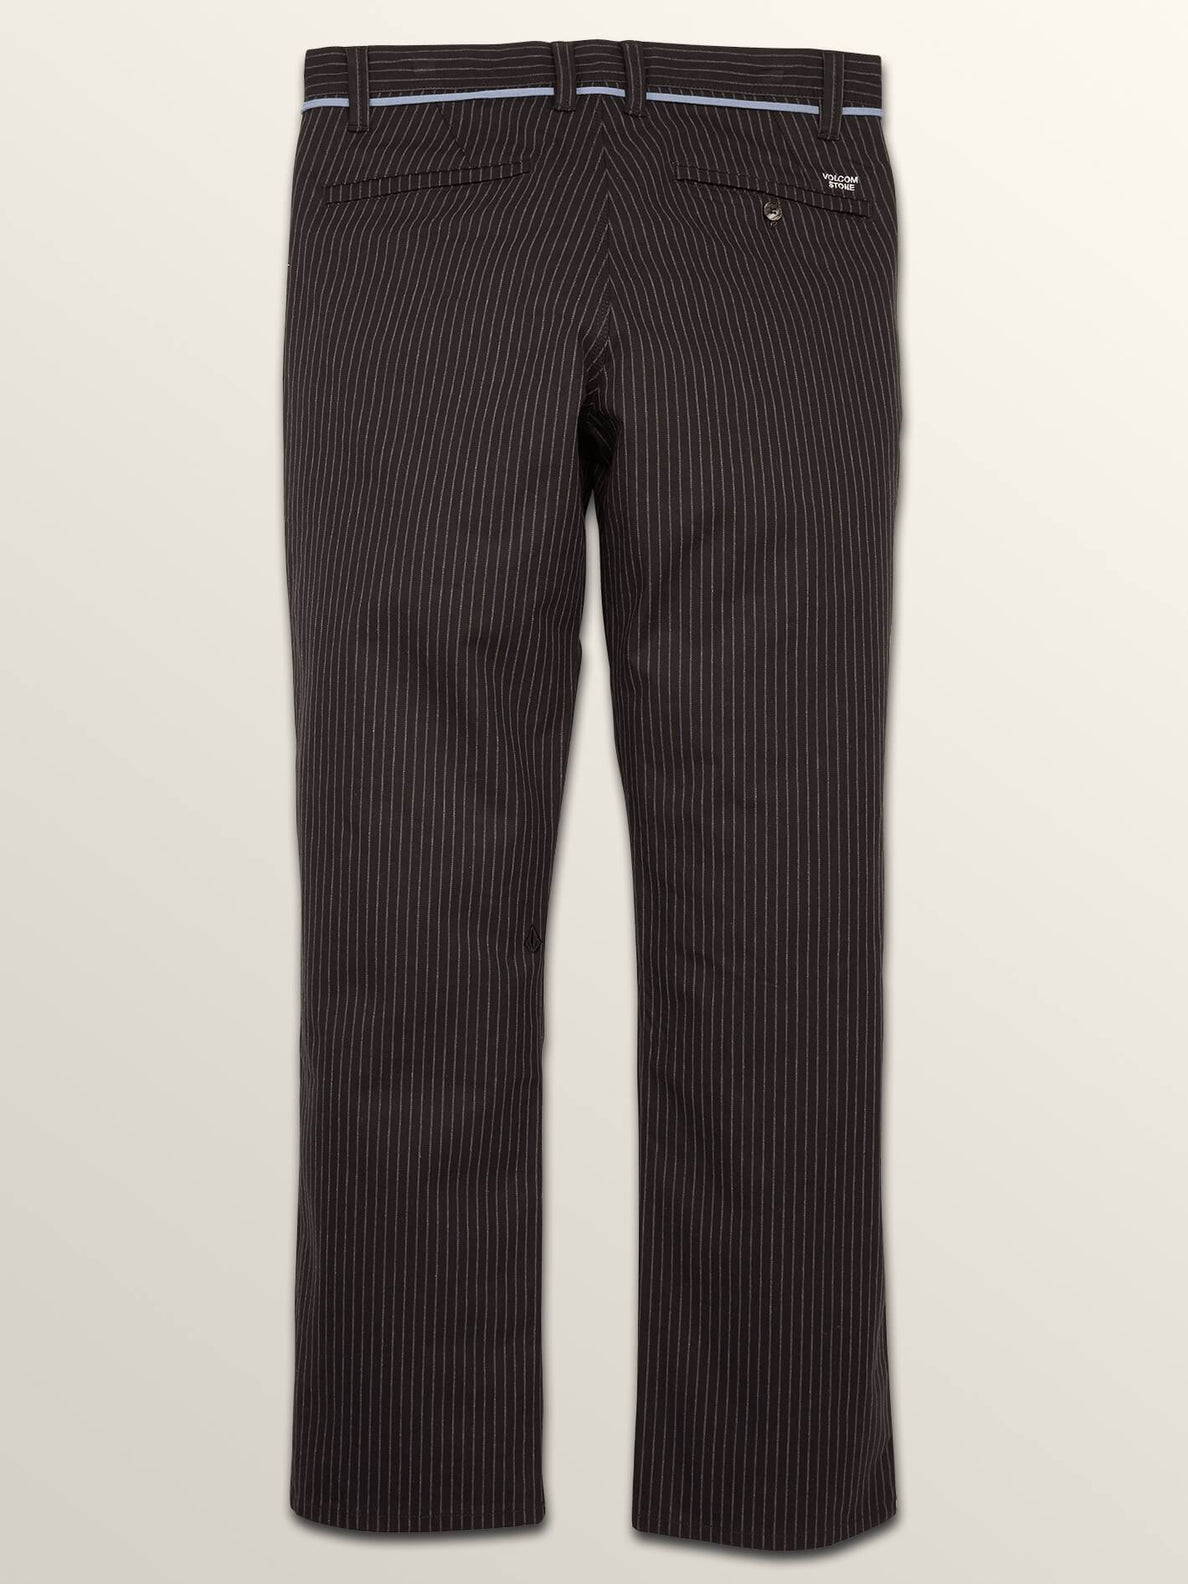 Noa Noise Chino Pants In Black, Sixth Alternate View